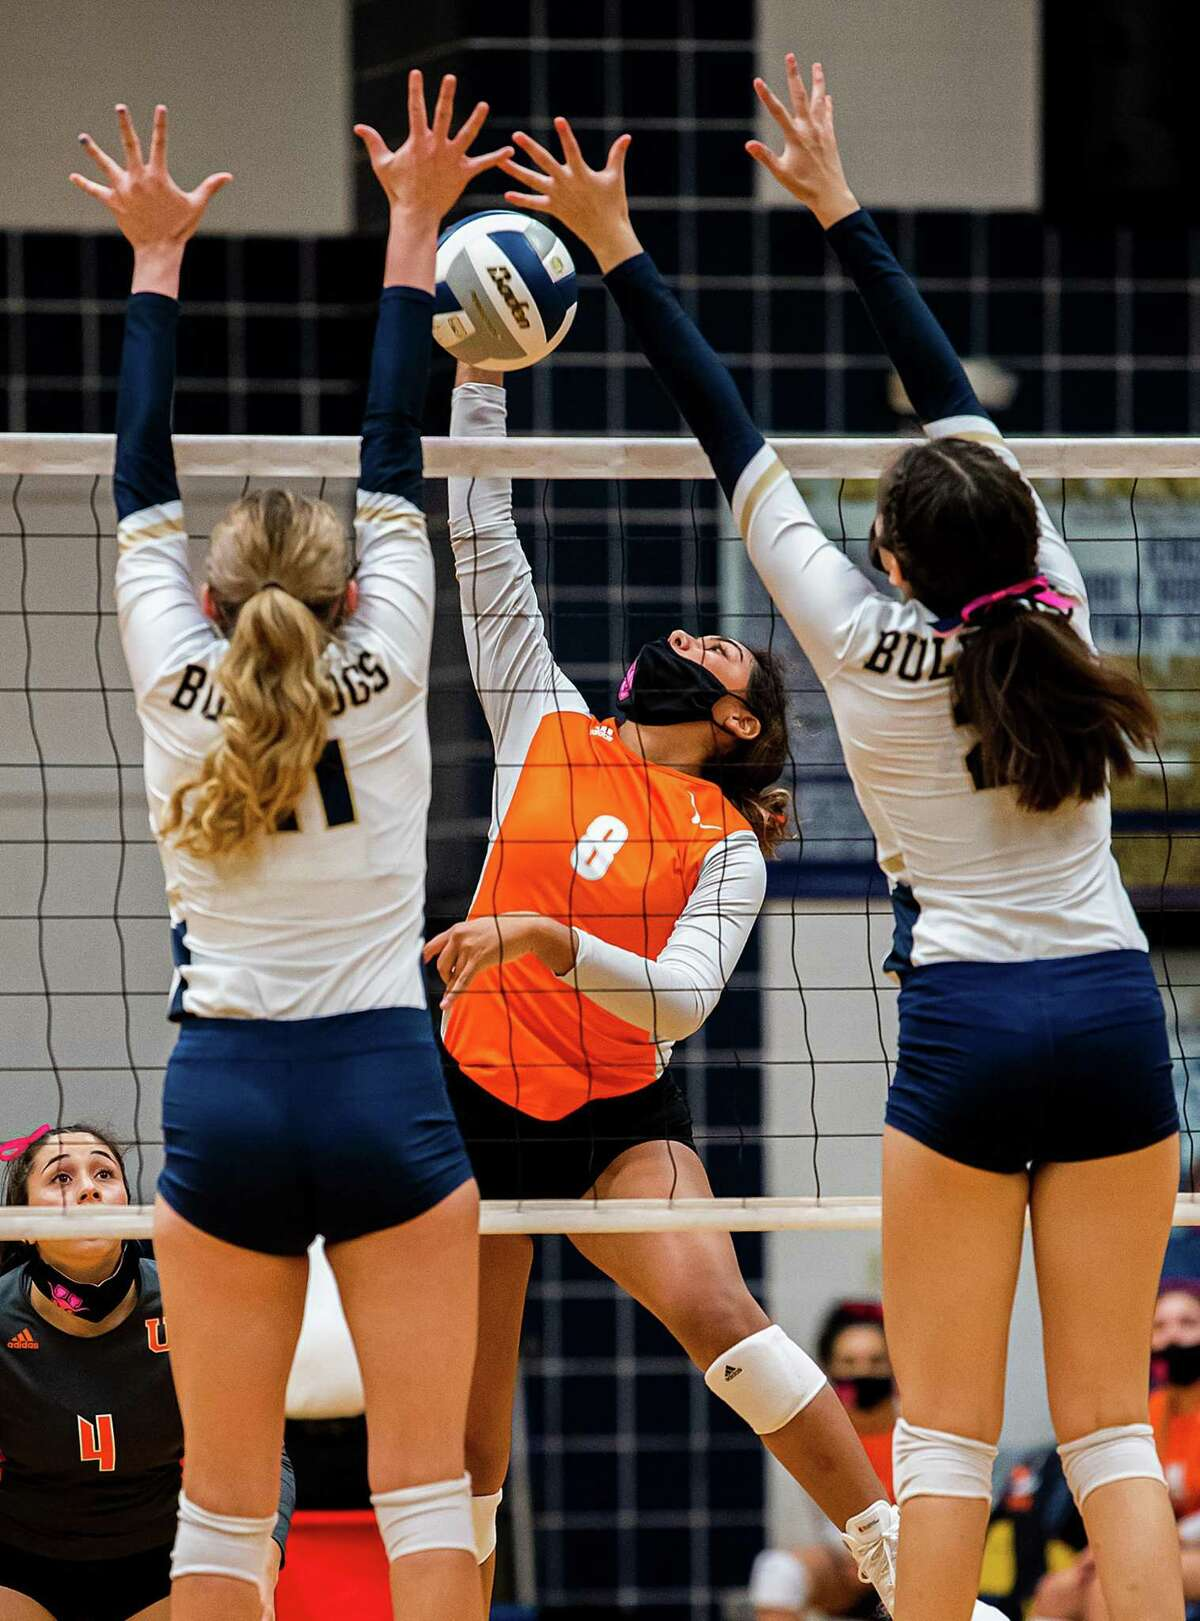 Lori Contreras had 12 kills Tuesday as United edged rival Alexander 3-2 to complete of the sweep round of District 30-6A play.